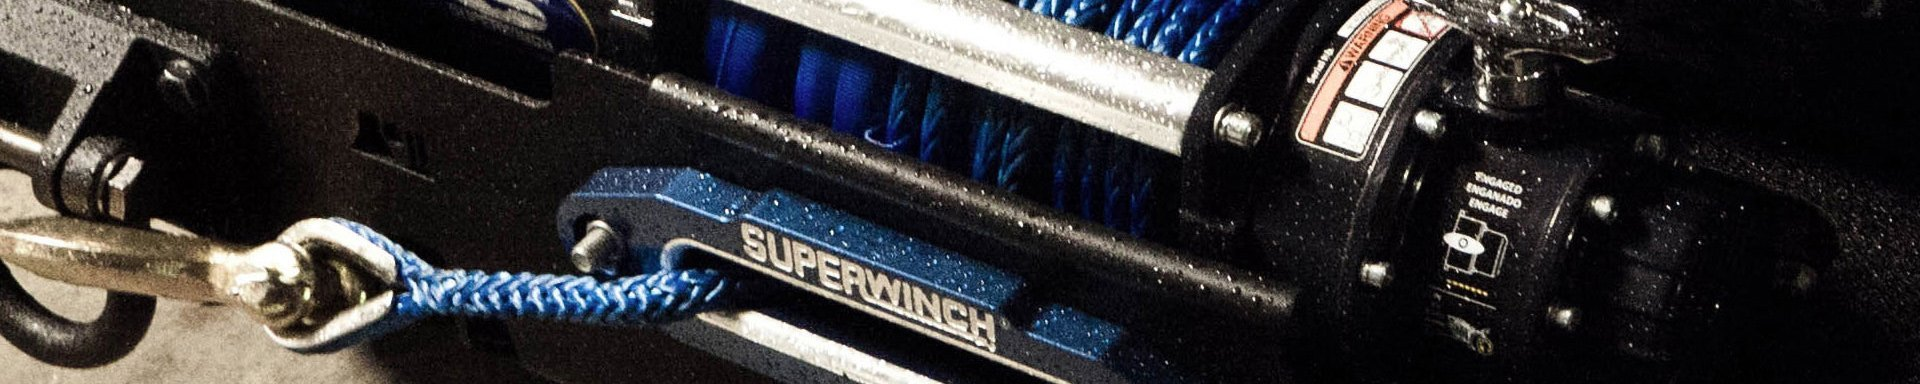 superwinch superwinch™ winches, remote controls, mounts, parts, hubs superwinch lp8500 wiring diagram at webbmarketing.co